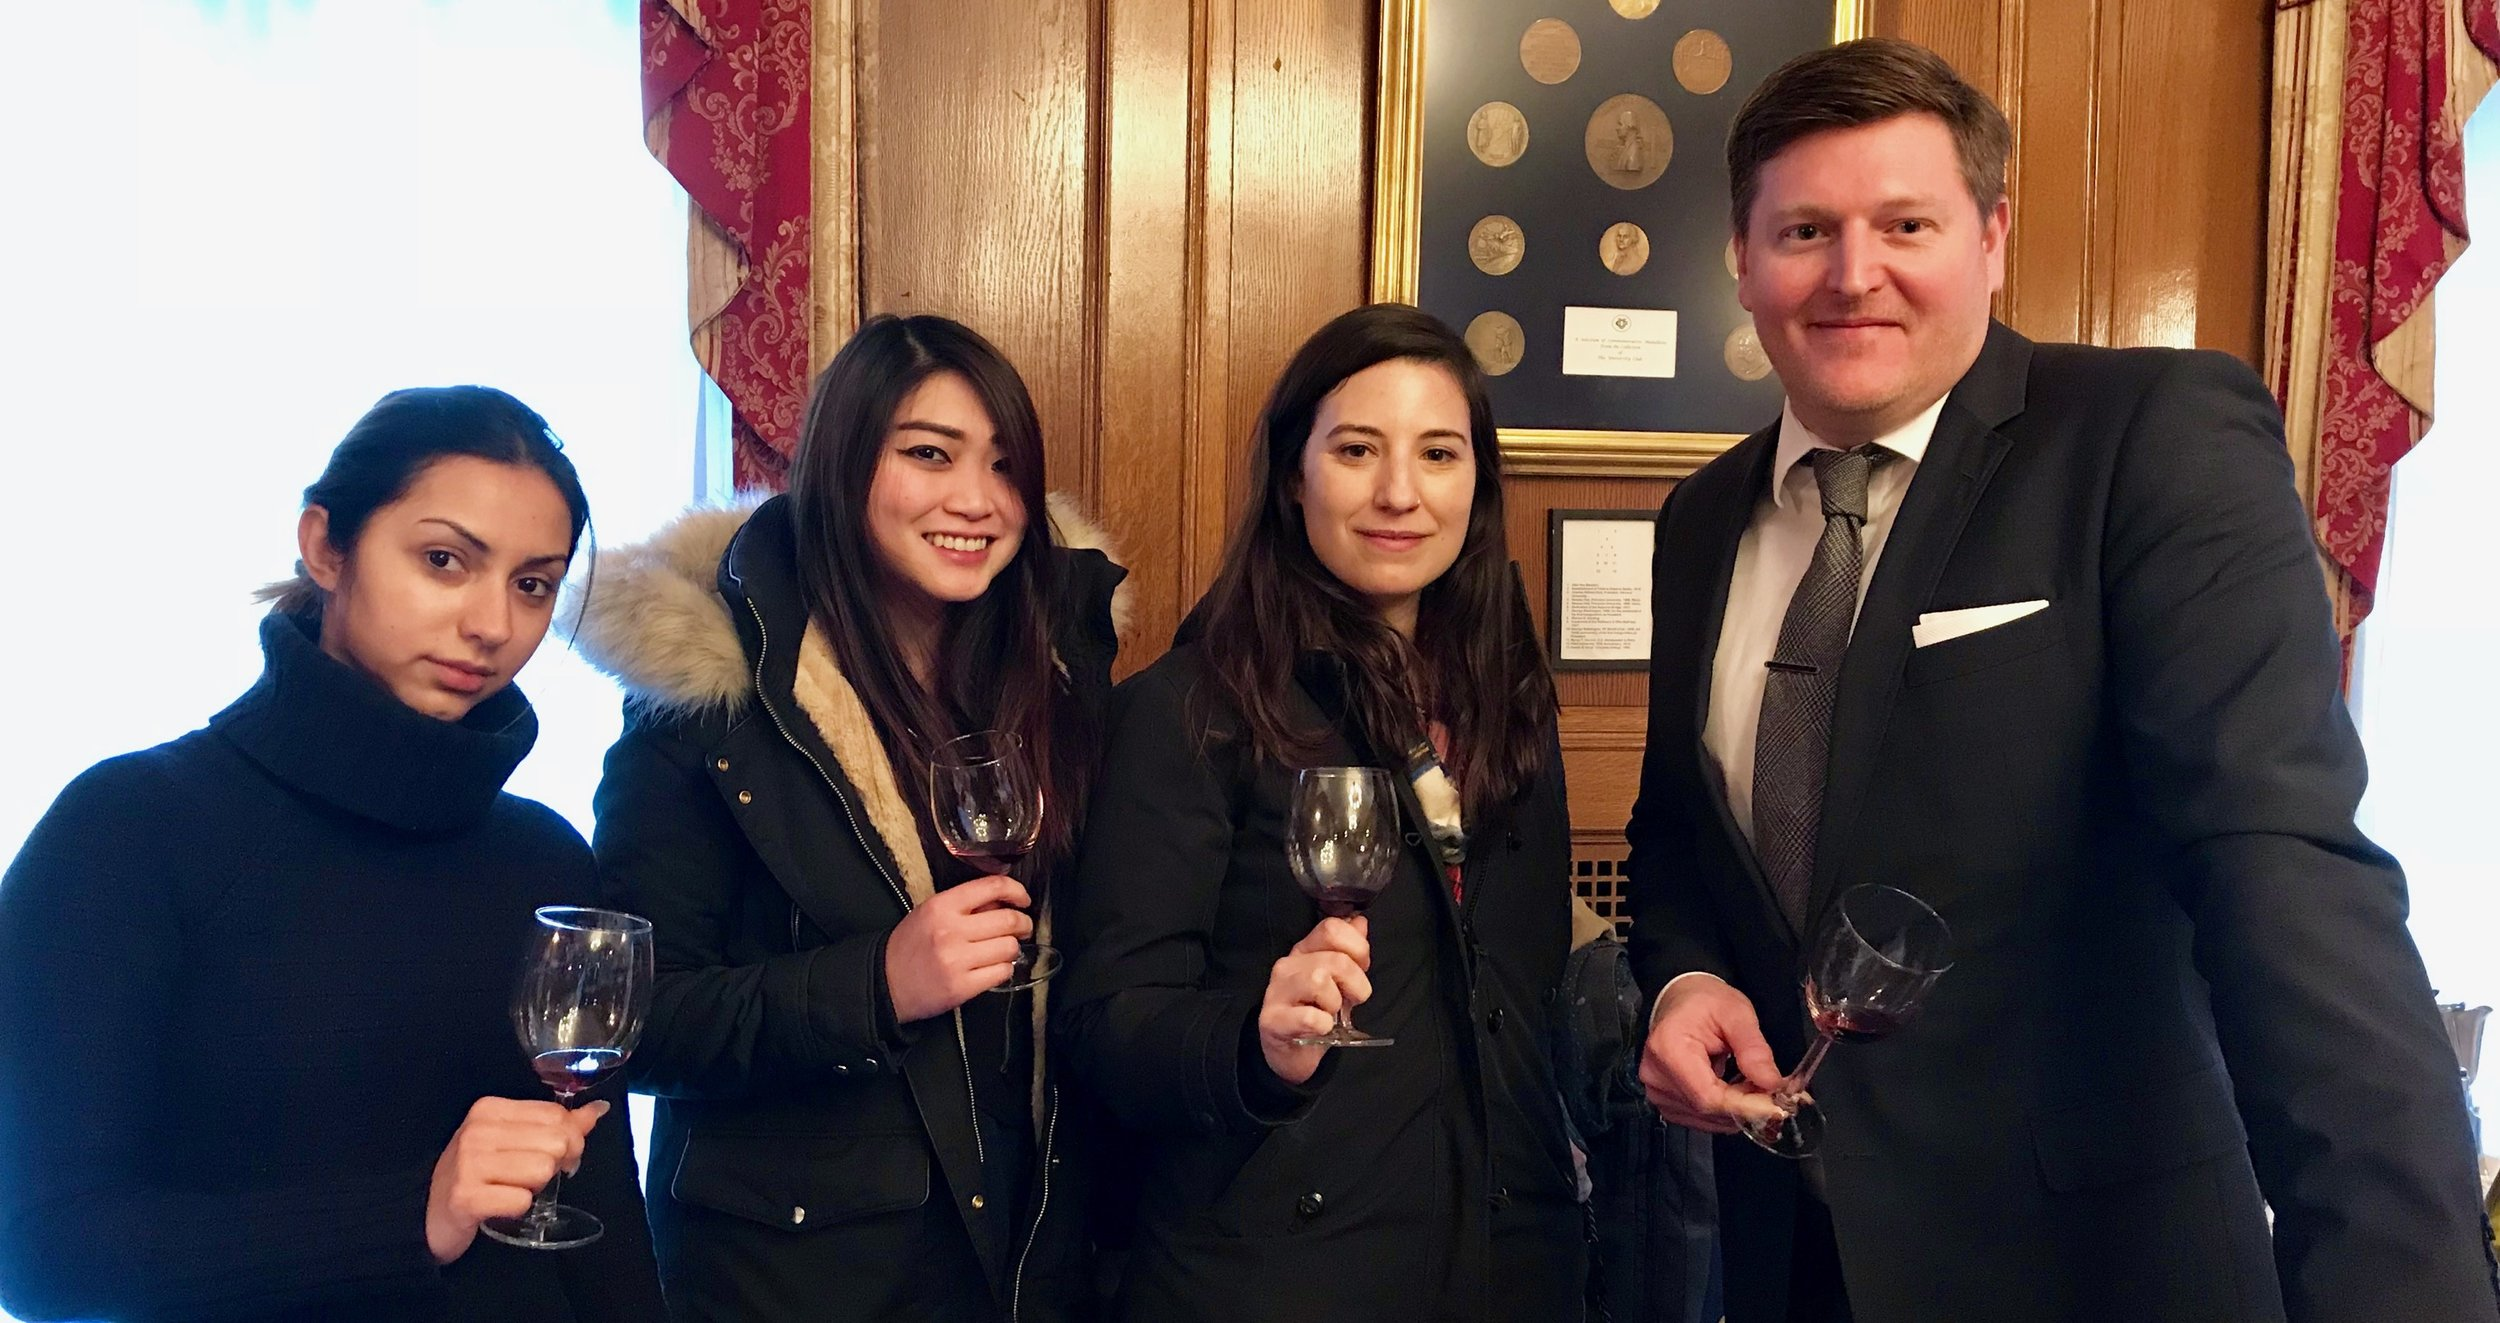 Dylan York, CS, with Sommelier Certificate Course students enjoying more California wines after class